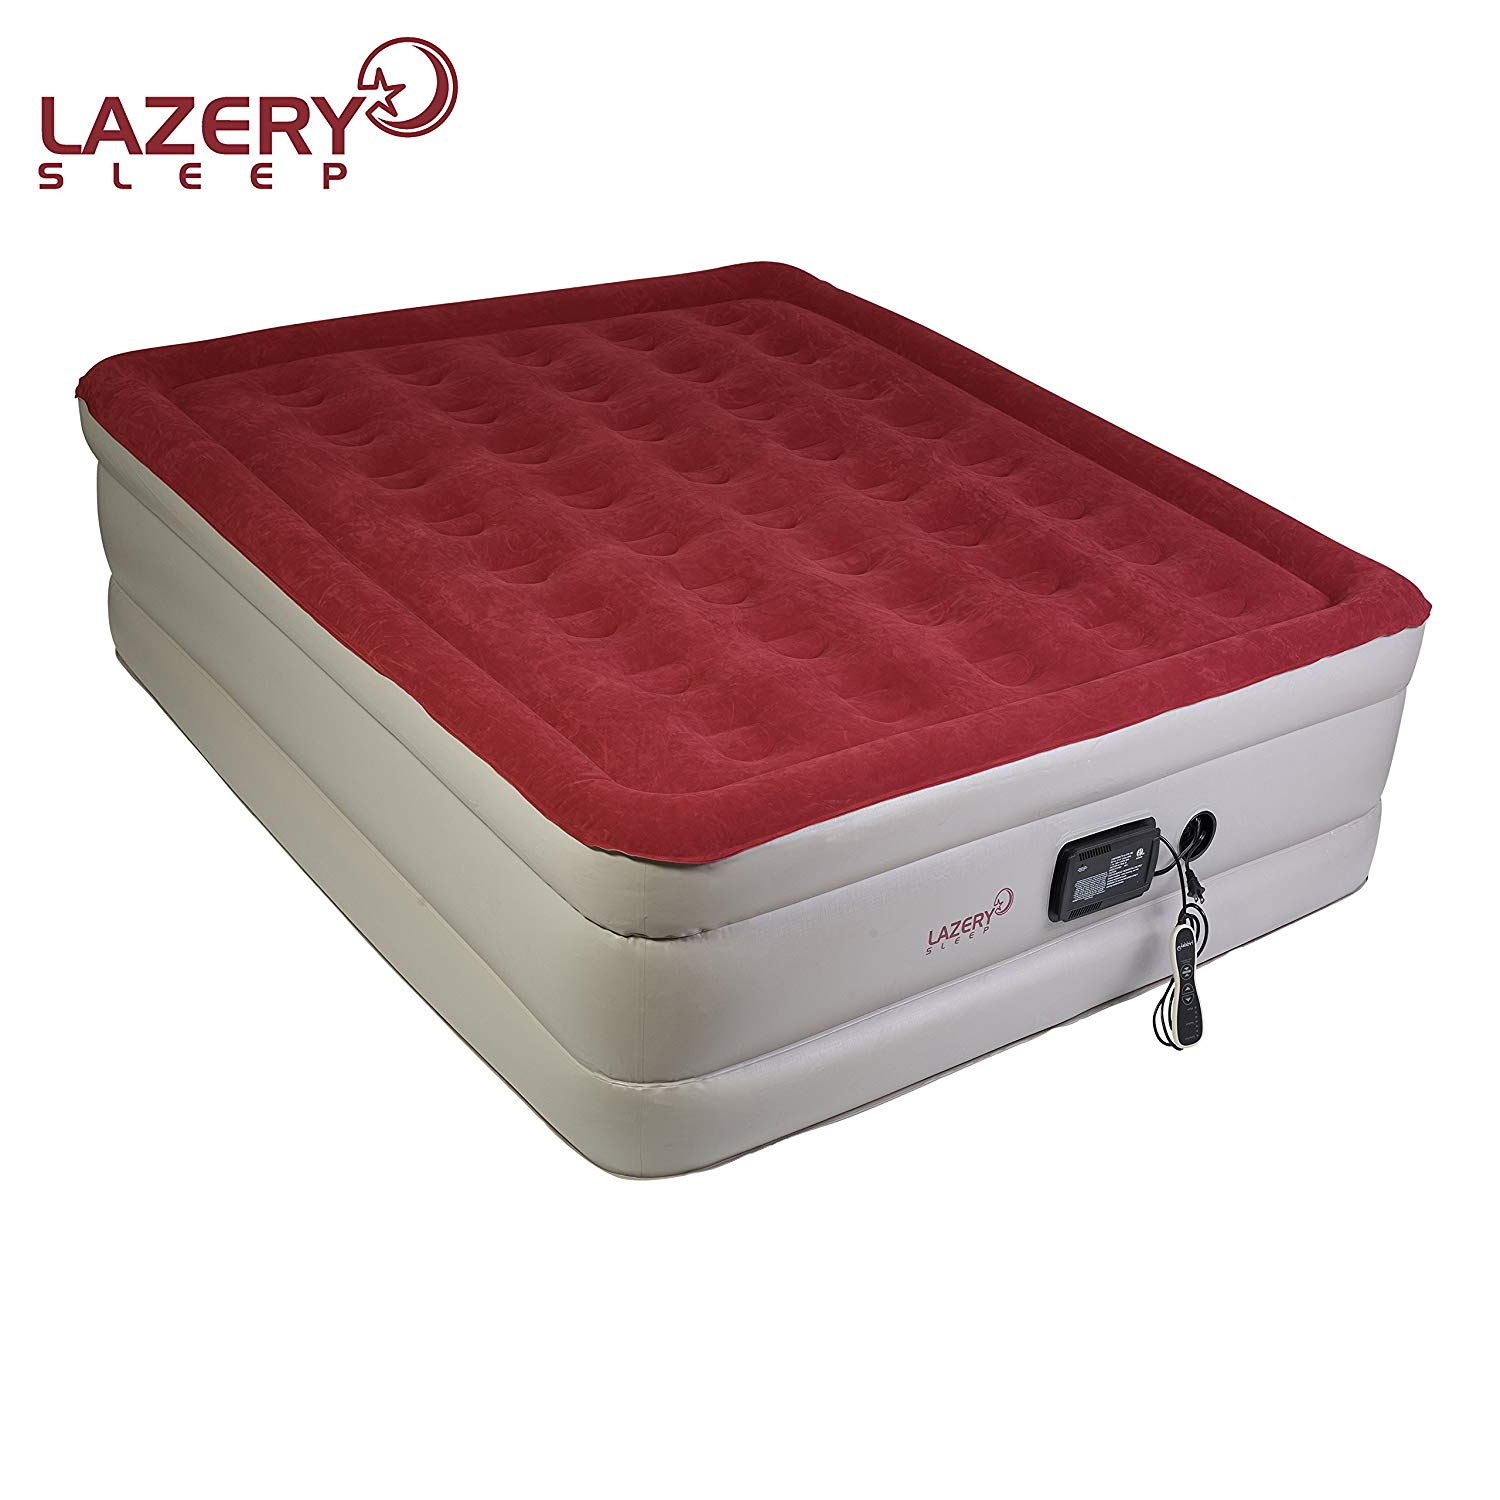 Lazery Sleep Best Mattress on Amazon Review by www.snoremagazine.com